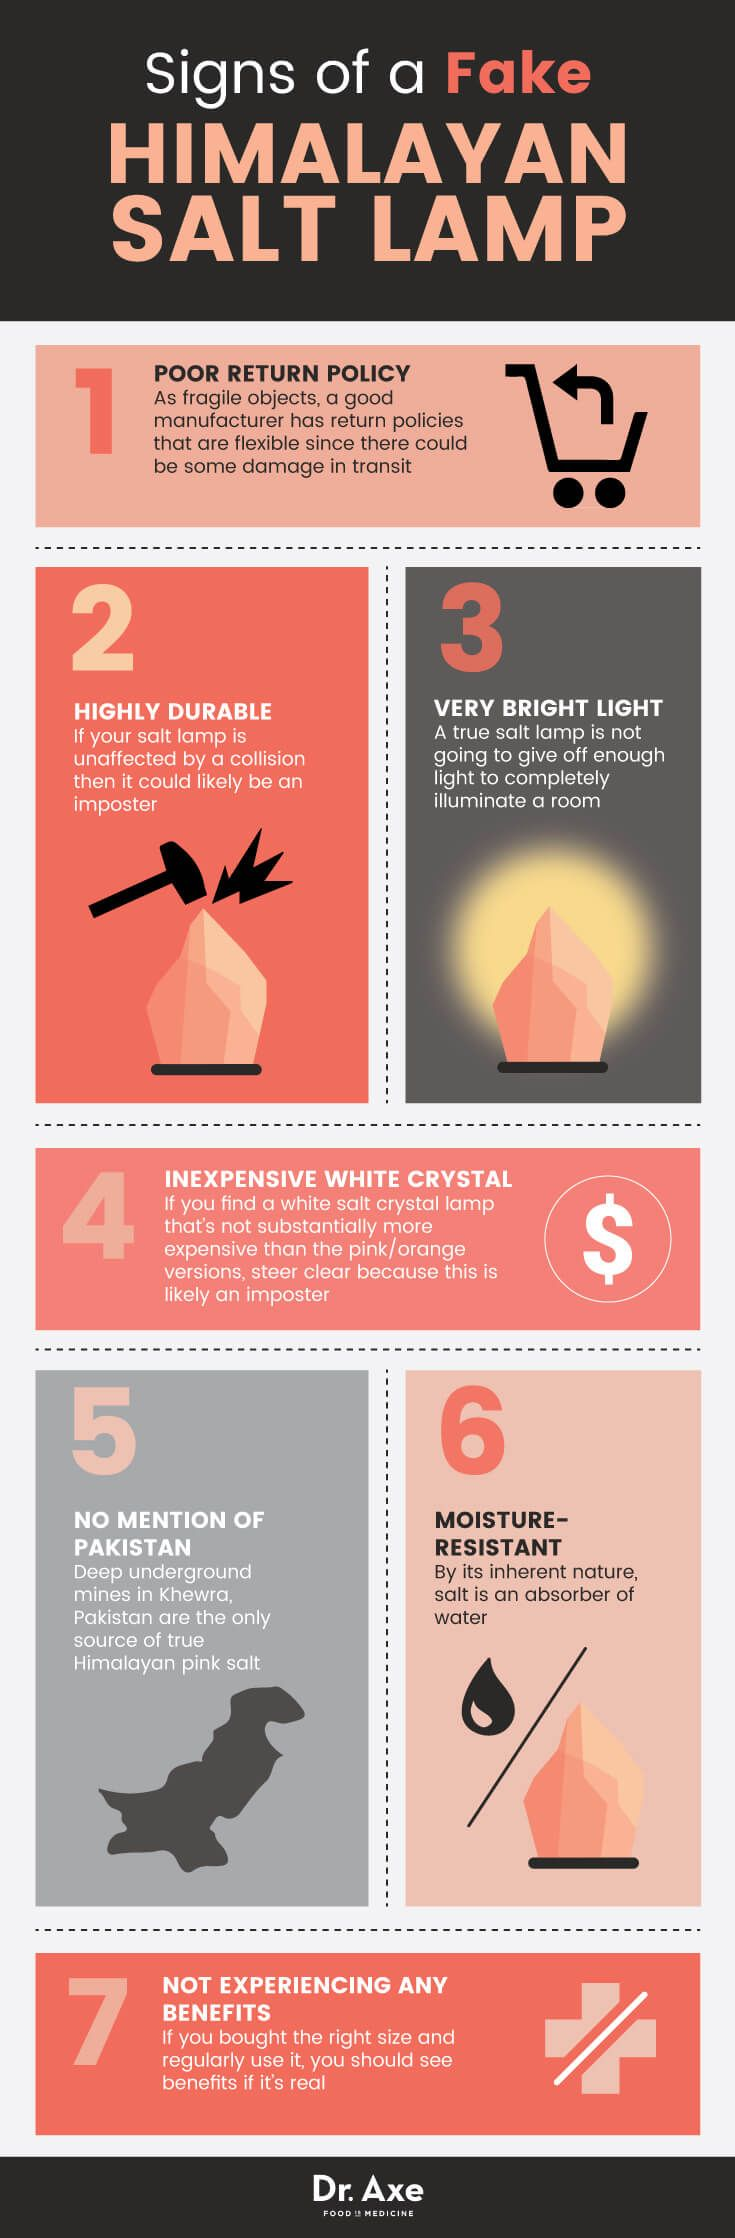 Salt Rock Lamp Benefits Captivating 64 Best Has Anyone Tried A Himalayan Salt Lamp Imagesvanessa 2018